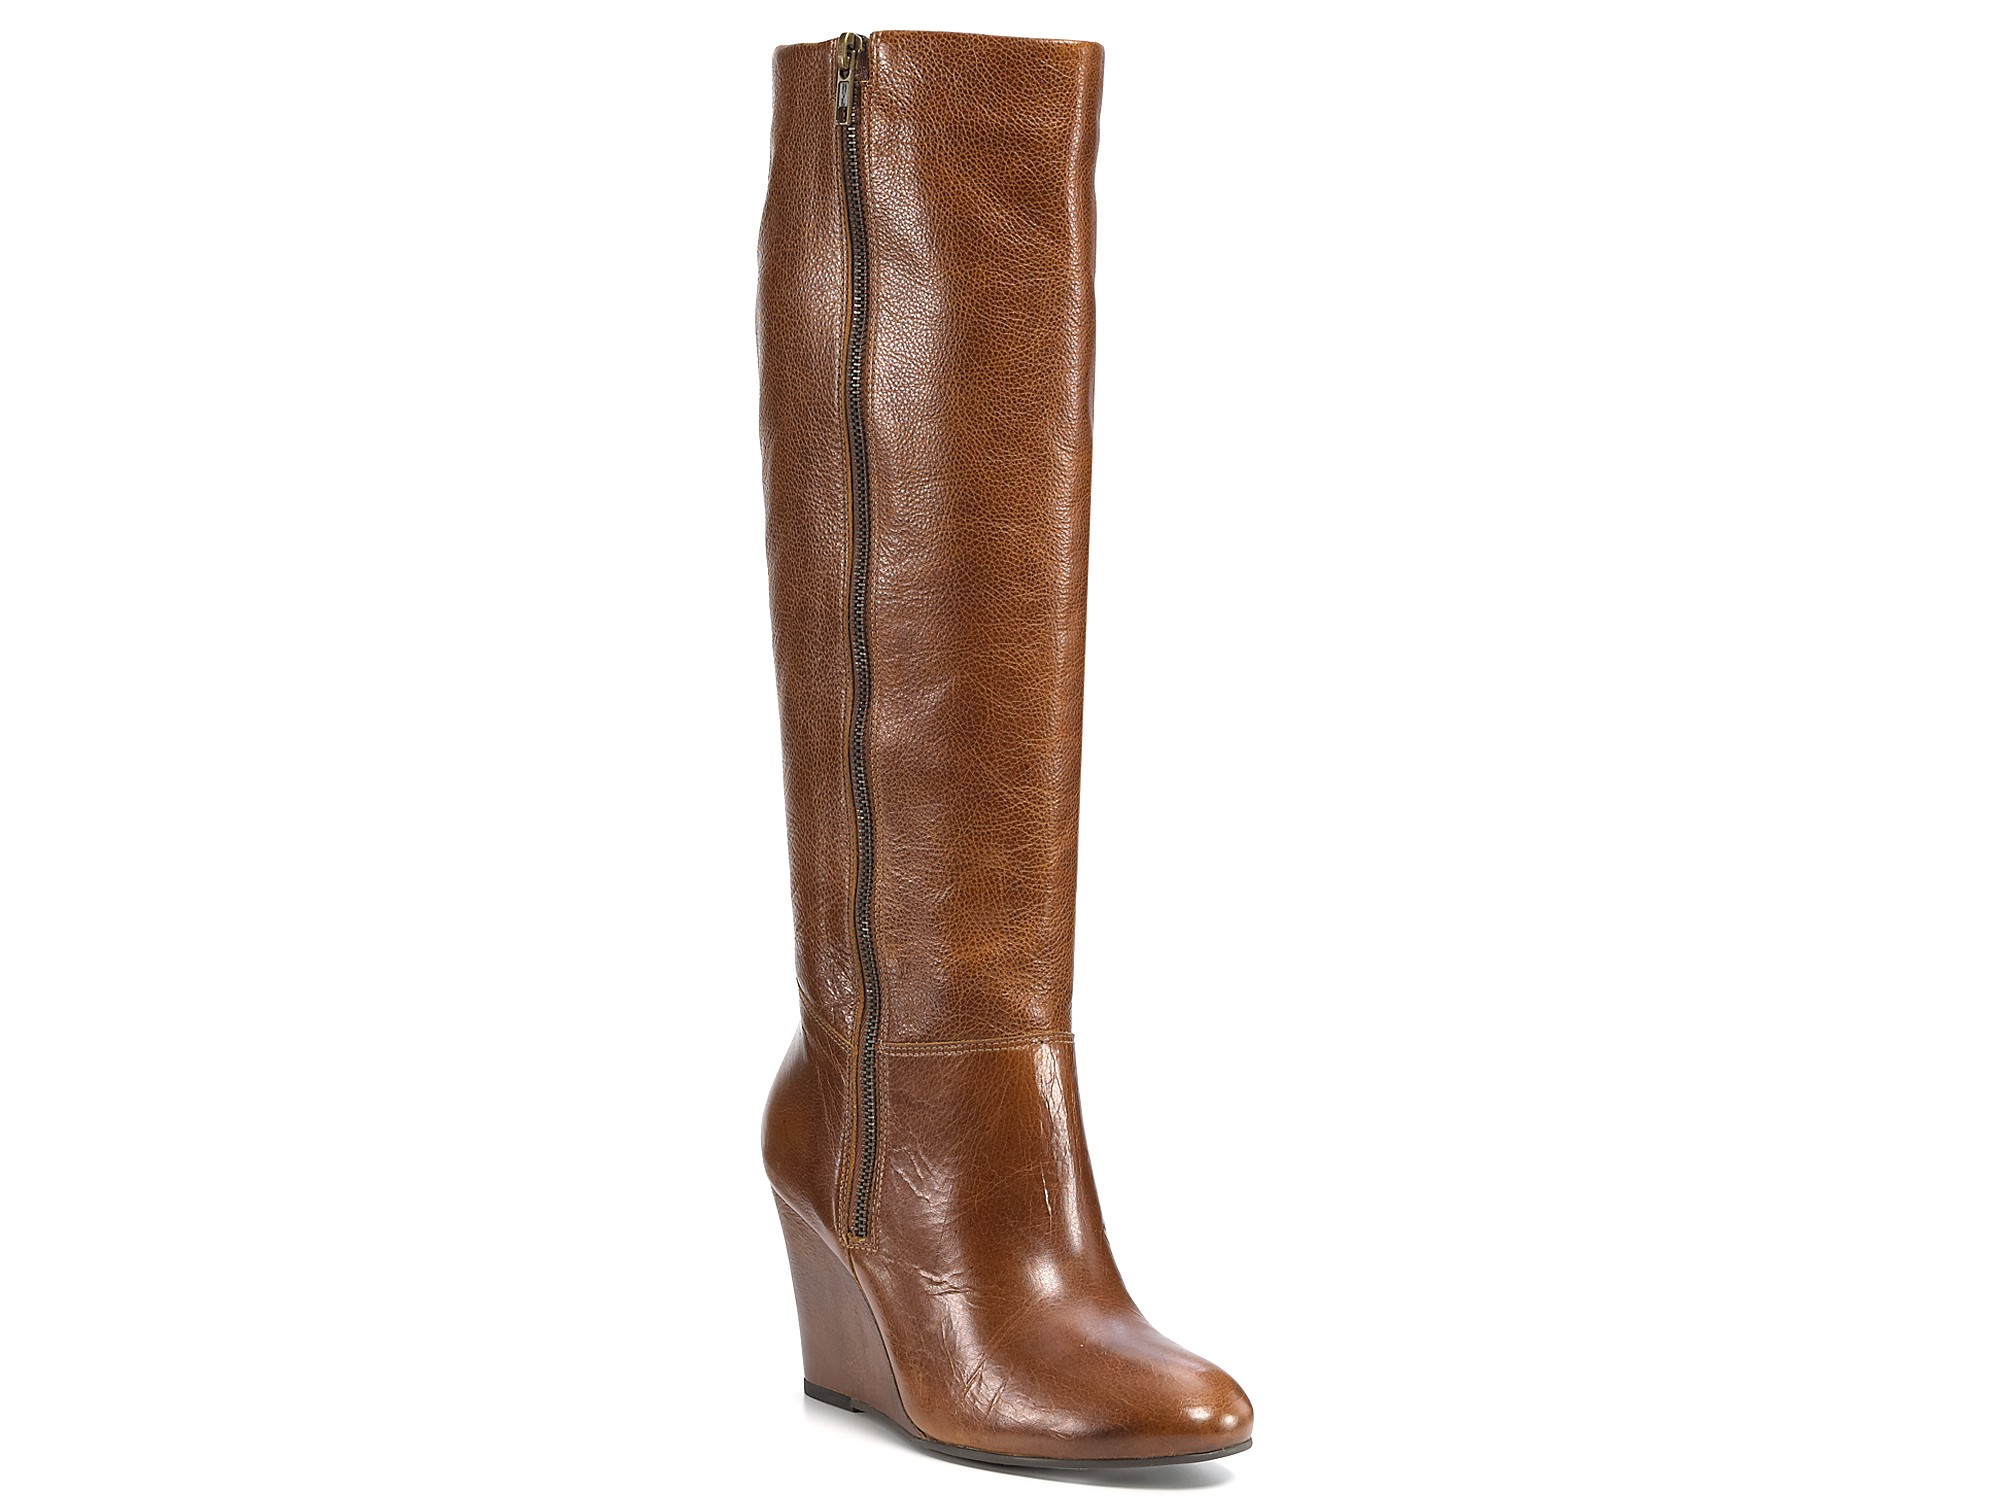 steve madden wedge boots in brown cognac leather lyst